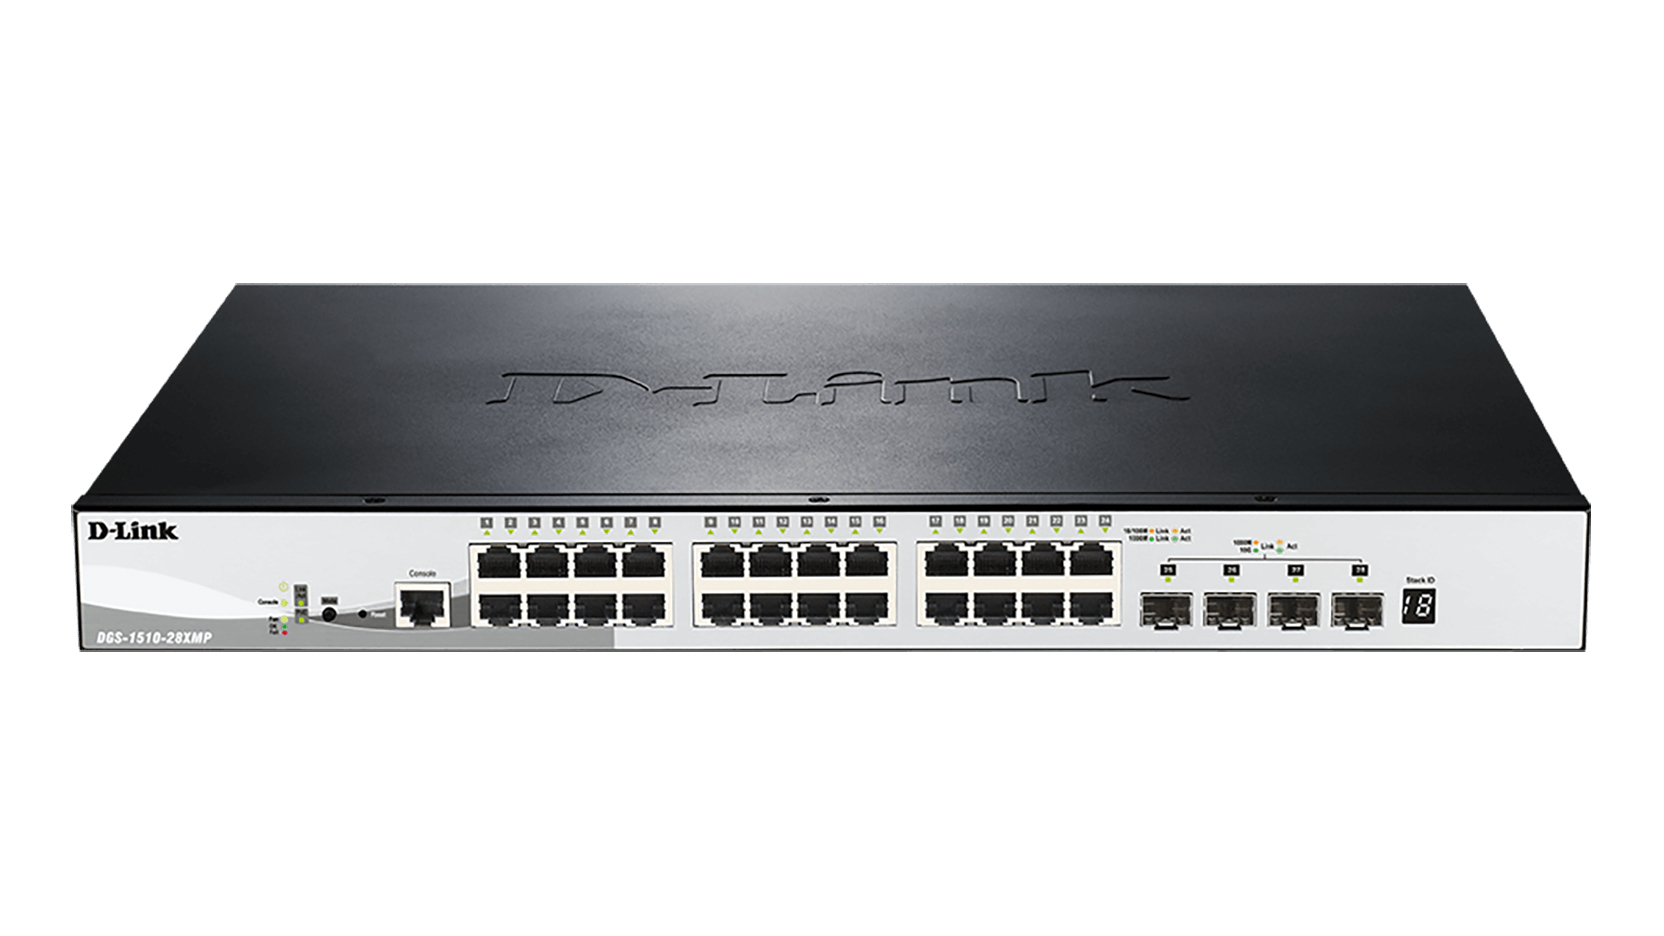 D-LINK DGS-1510-28XMP MANAGED NETWORK SWITCH